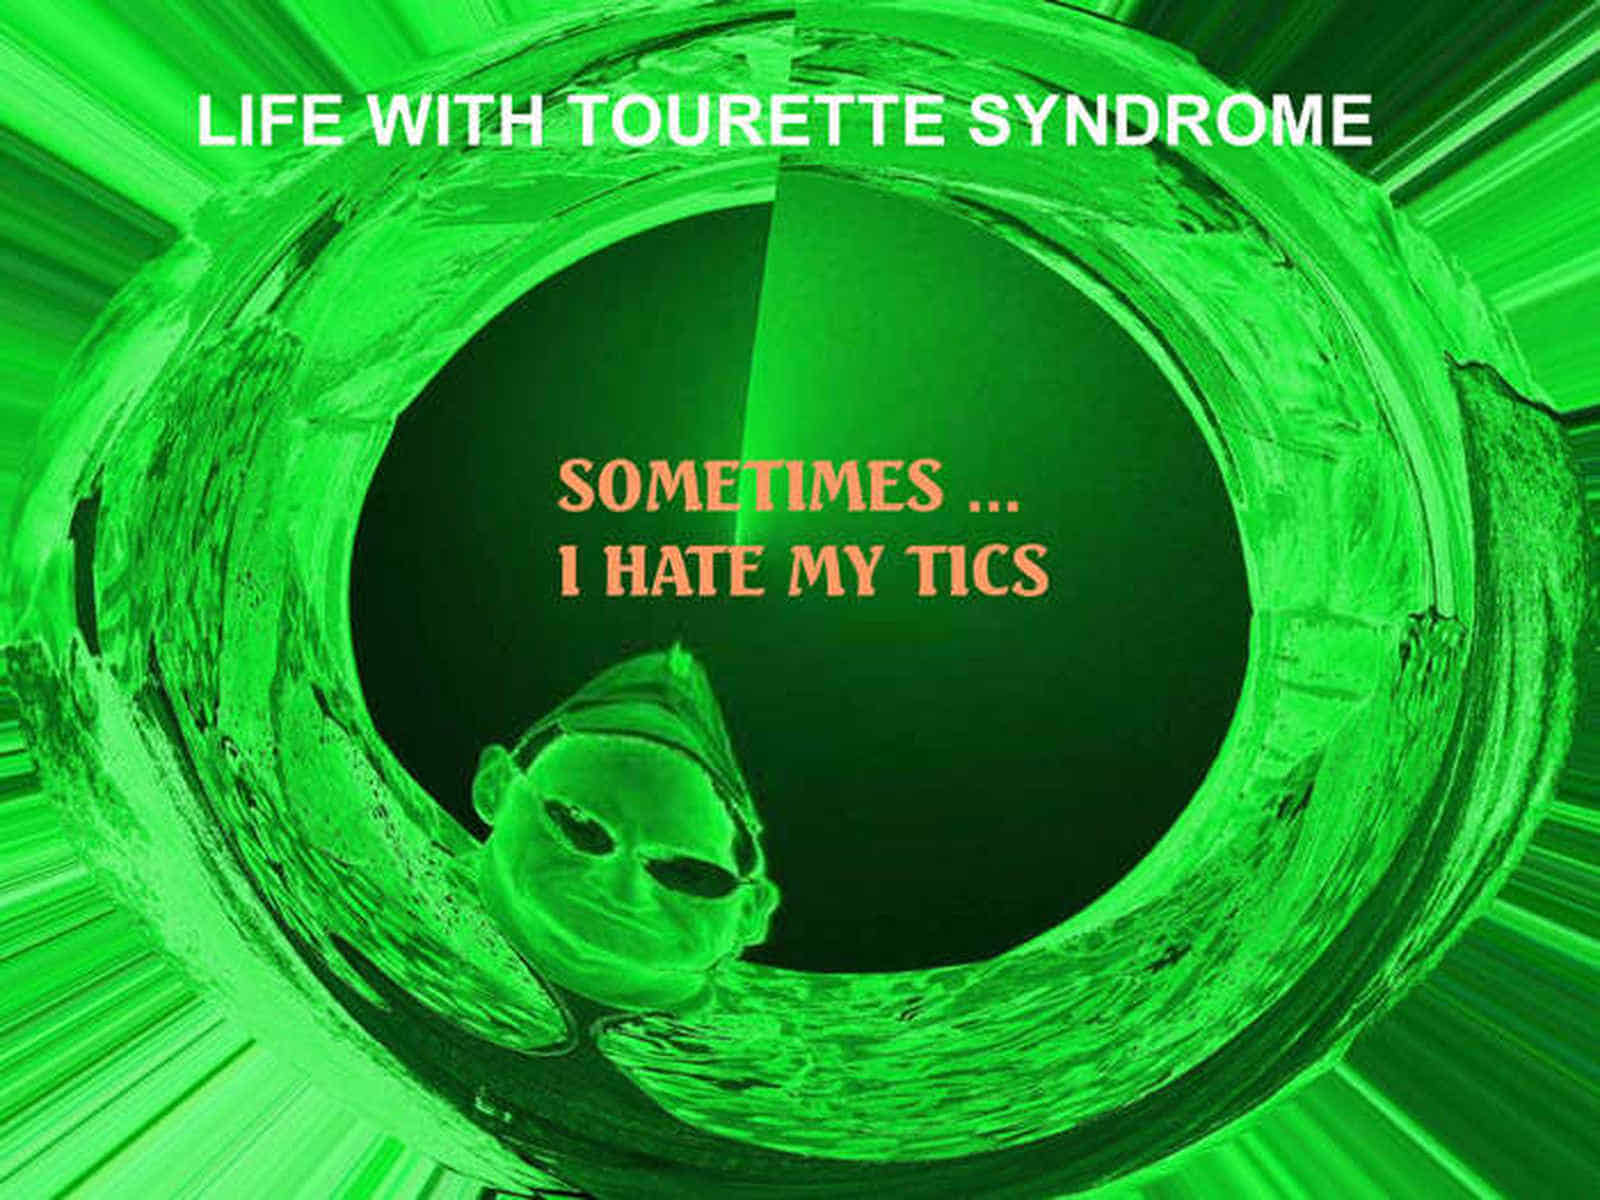 Grafik: Postkarte 09: Life With Tourette Syndrome: Sometimes I Hate My Tics.